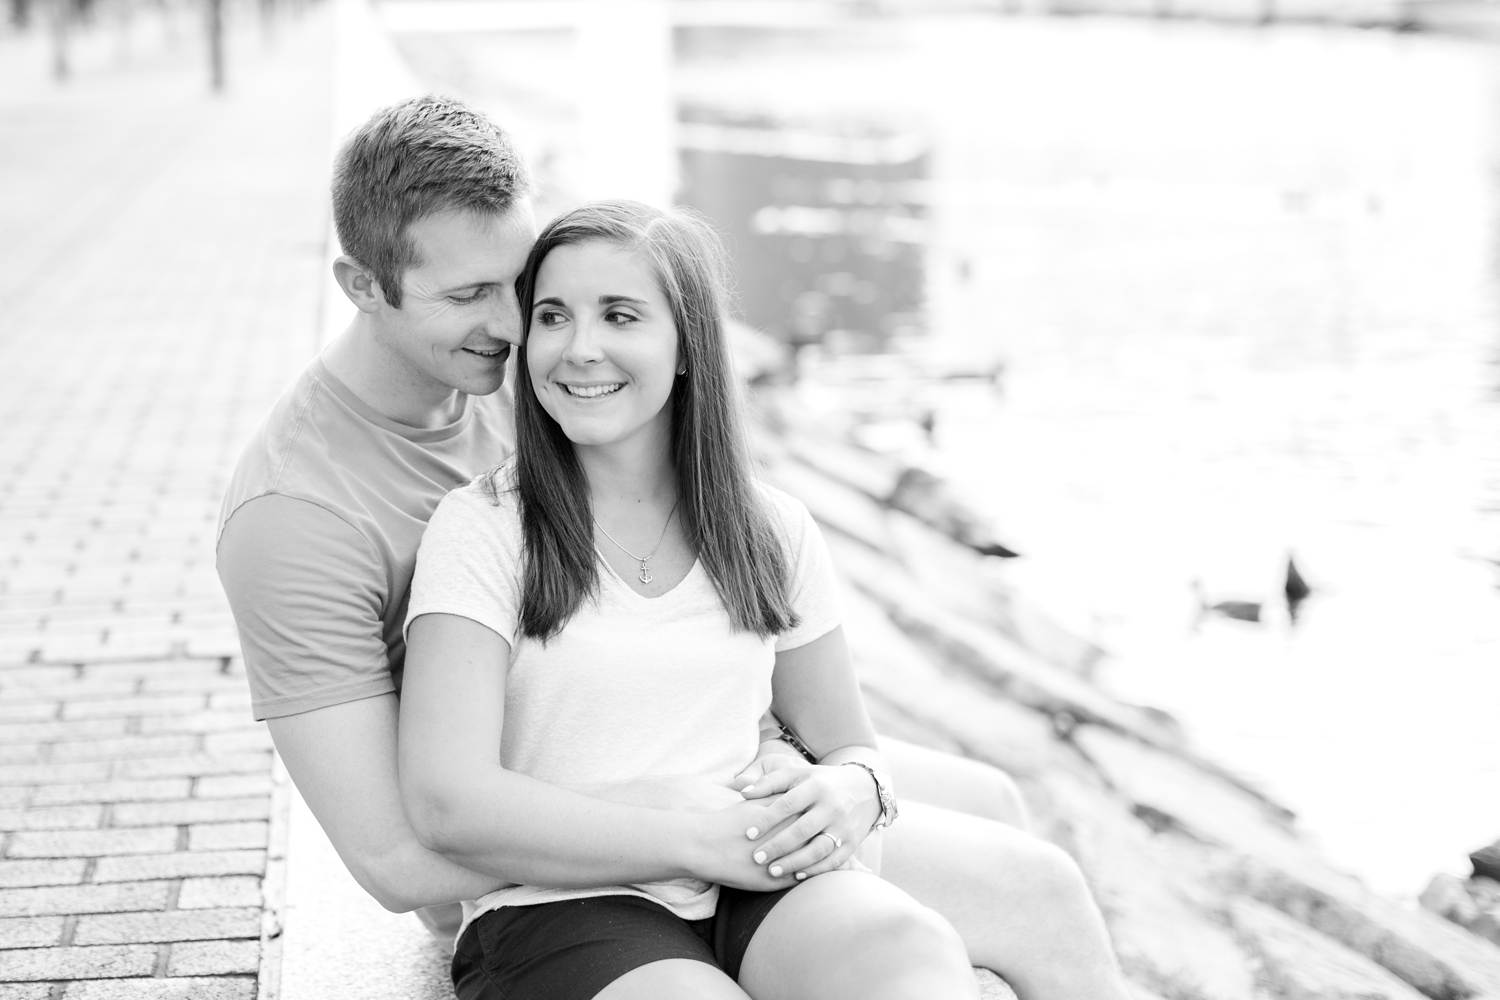 Jamie Wood & Daniel Schindler Engagement-154_Downtown-Baltimore-Maryland-engagement-photographer-anna-grace-photography-photo.jpg